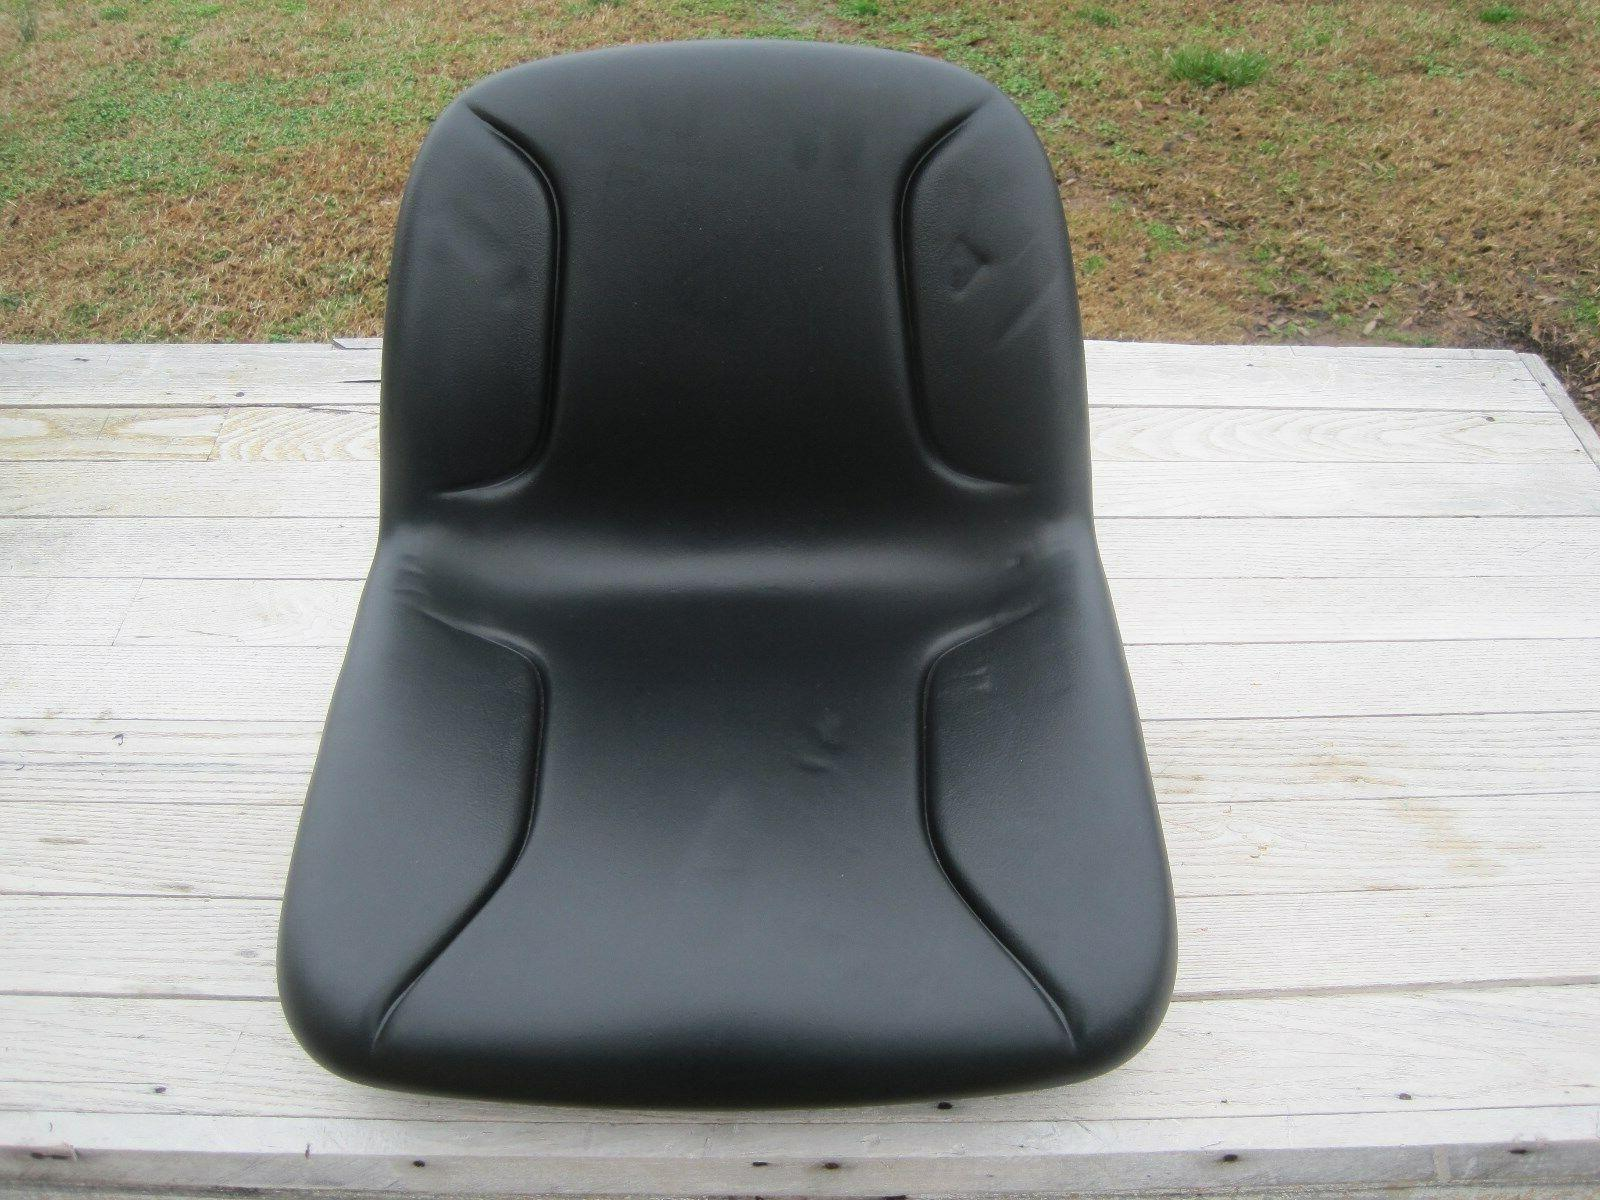 Troy-Bilt / Cub Cadet / Columbia Riding Lawn Mower Seat 757-